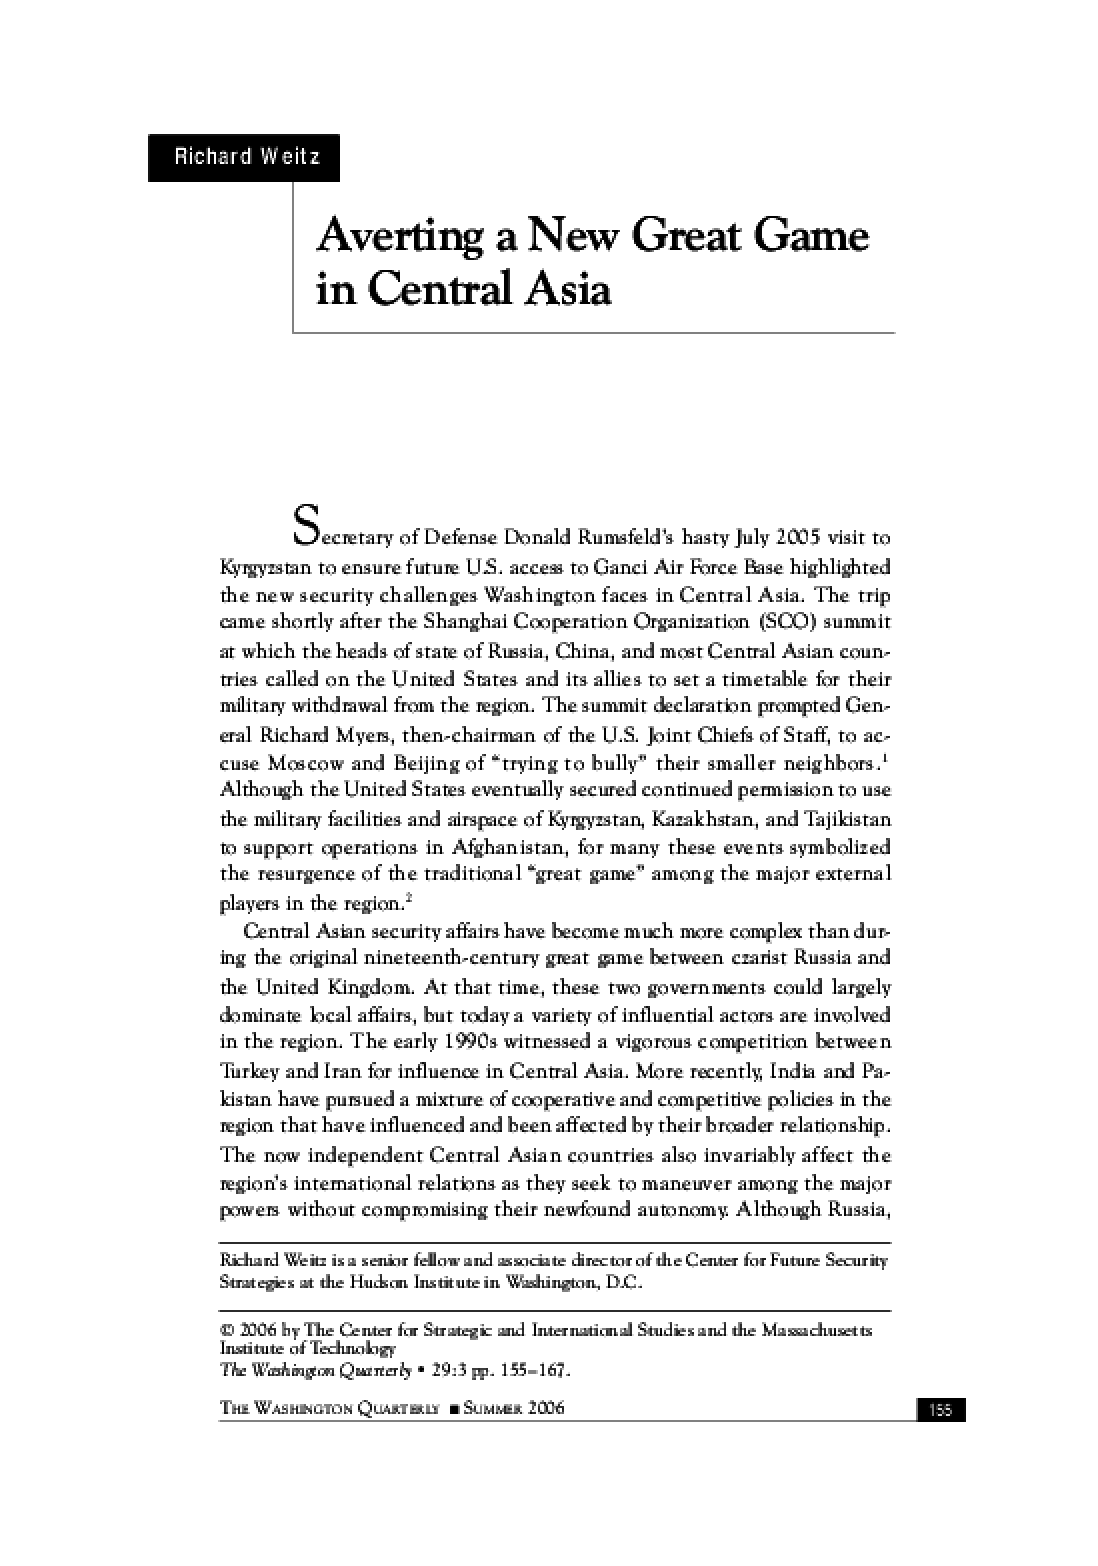 Averting A Great Game in Central Asia